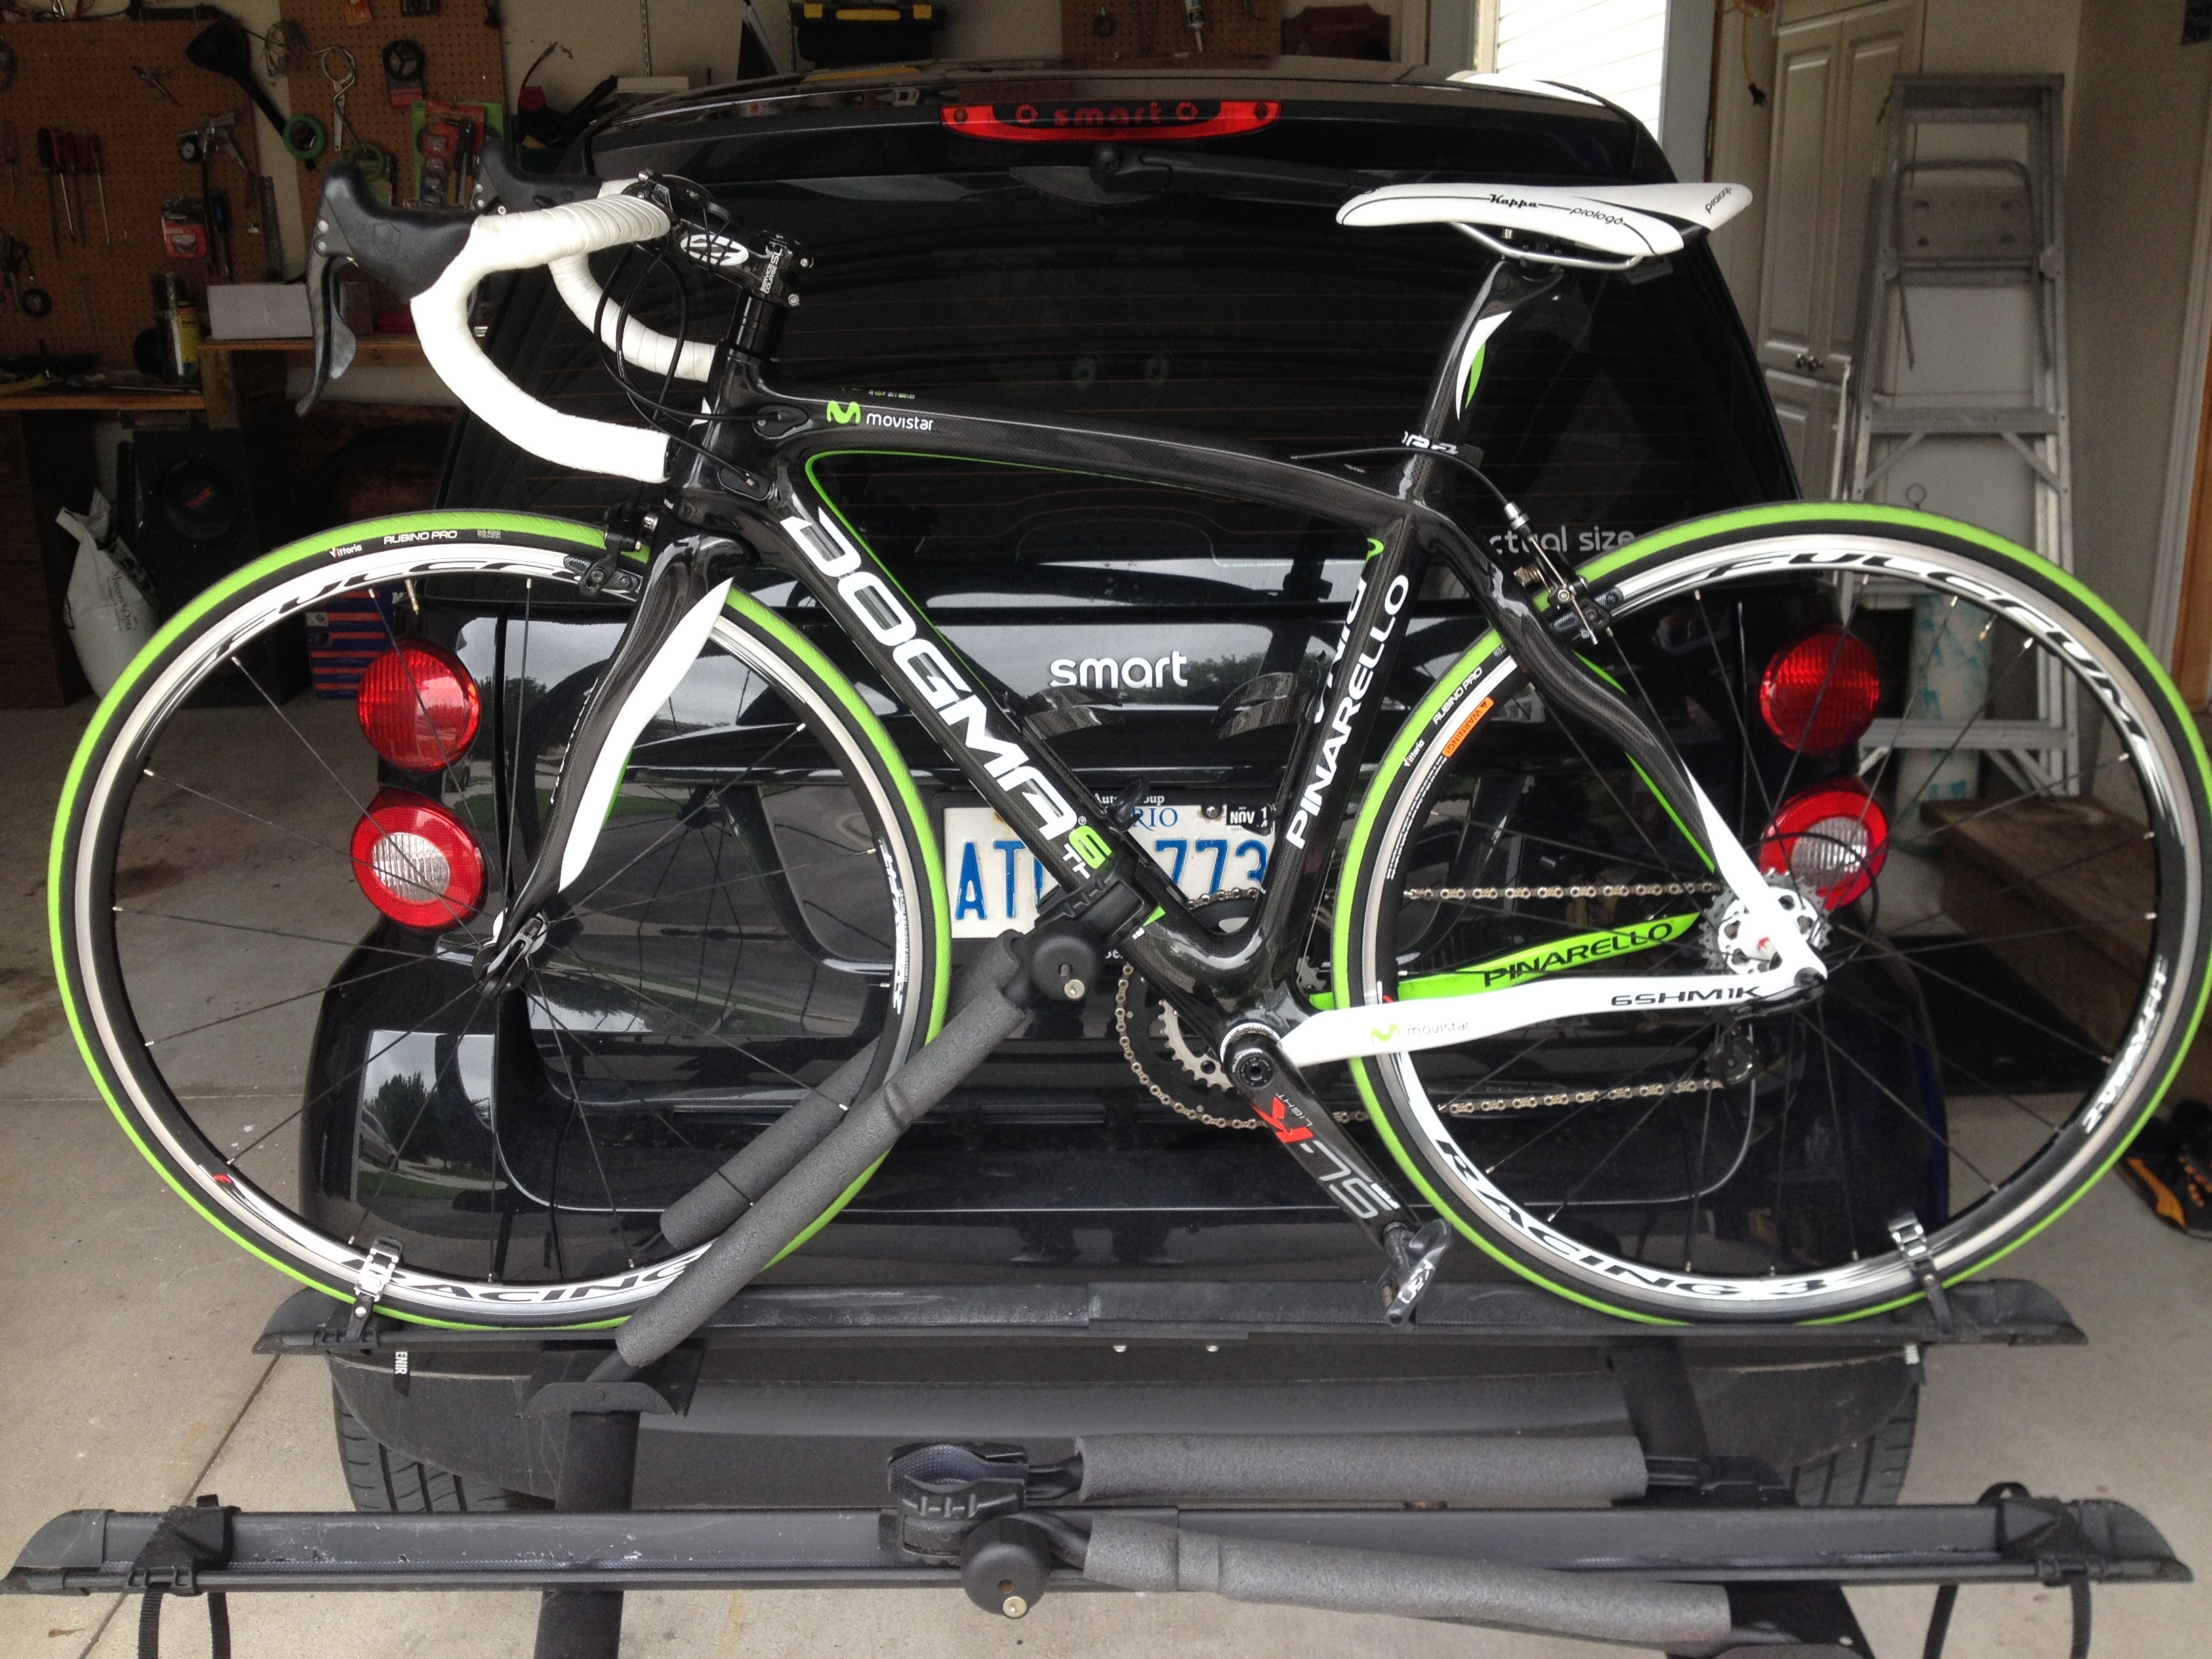 SOLD Smart Fortwo Bike Rack - Member Classifieds - Parts and ...